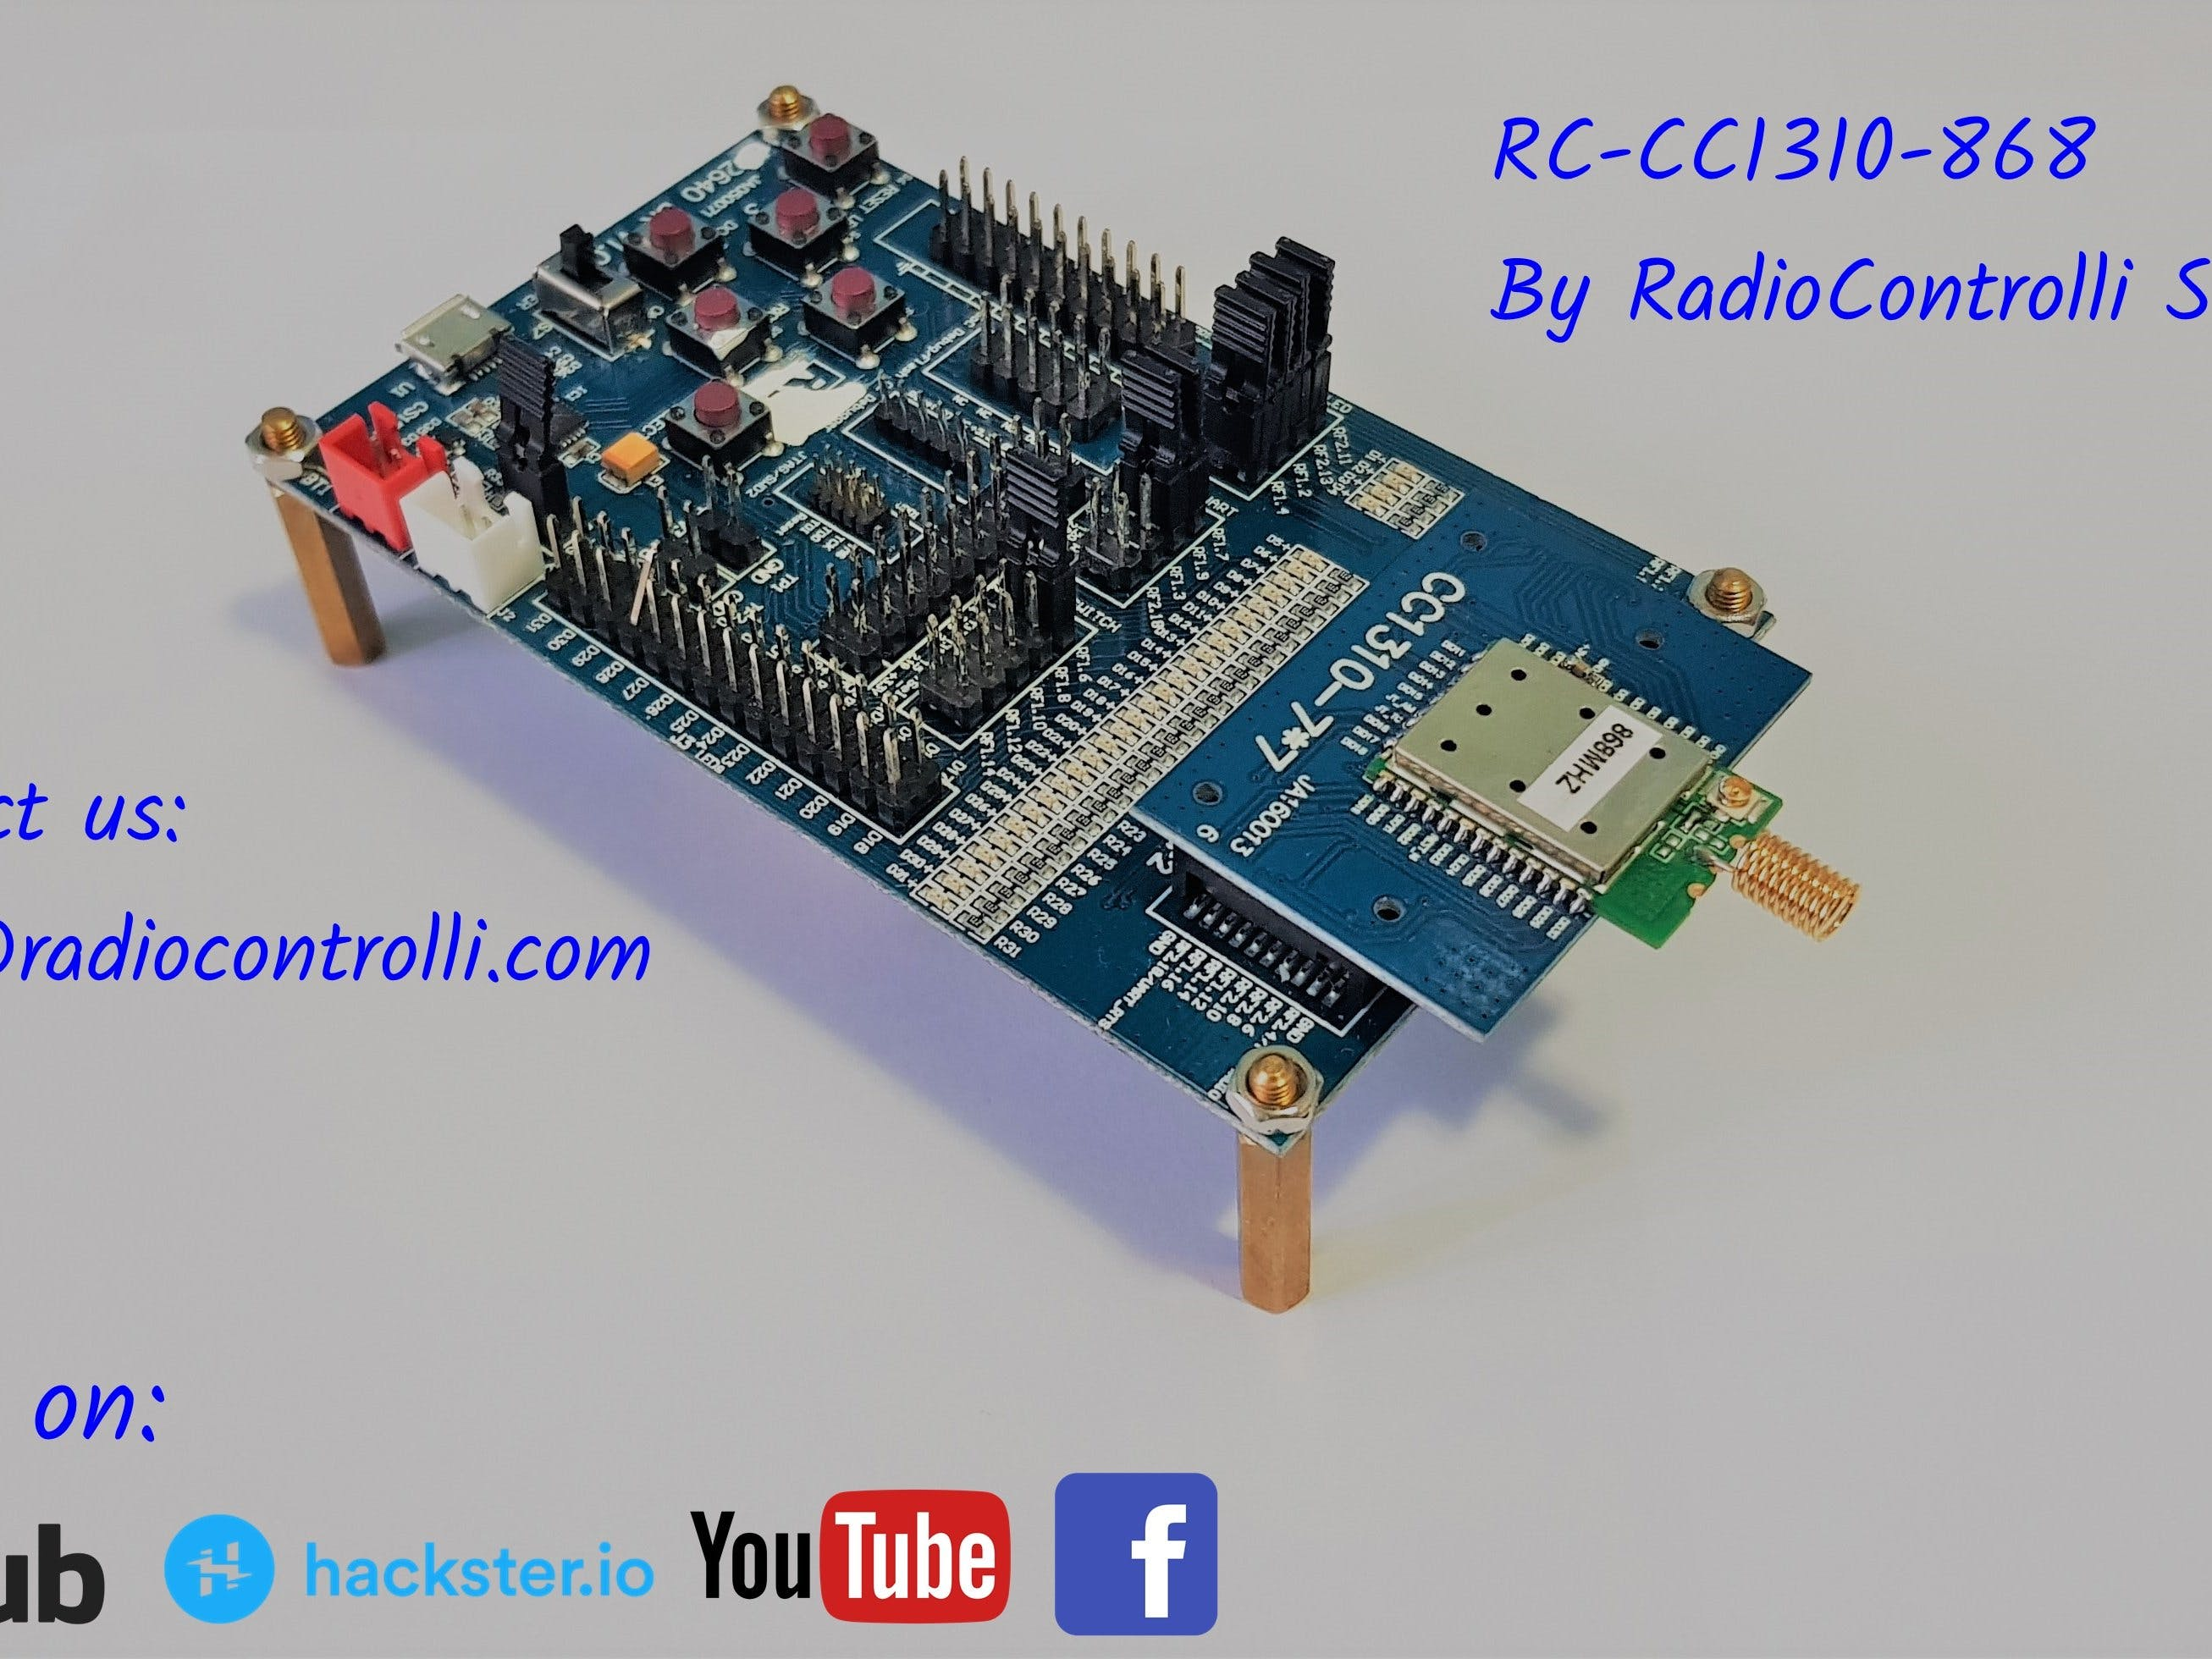 TI-RTOS: Long Range Mode with RC-CC1310-868